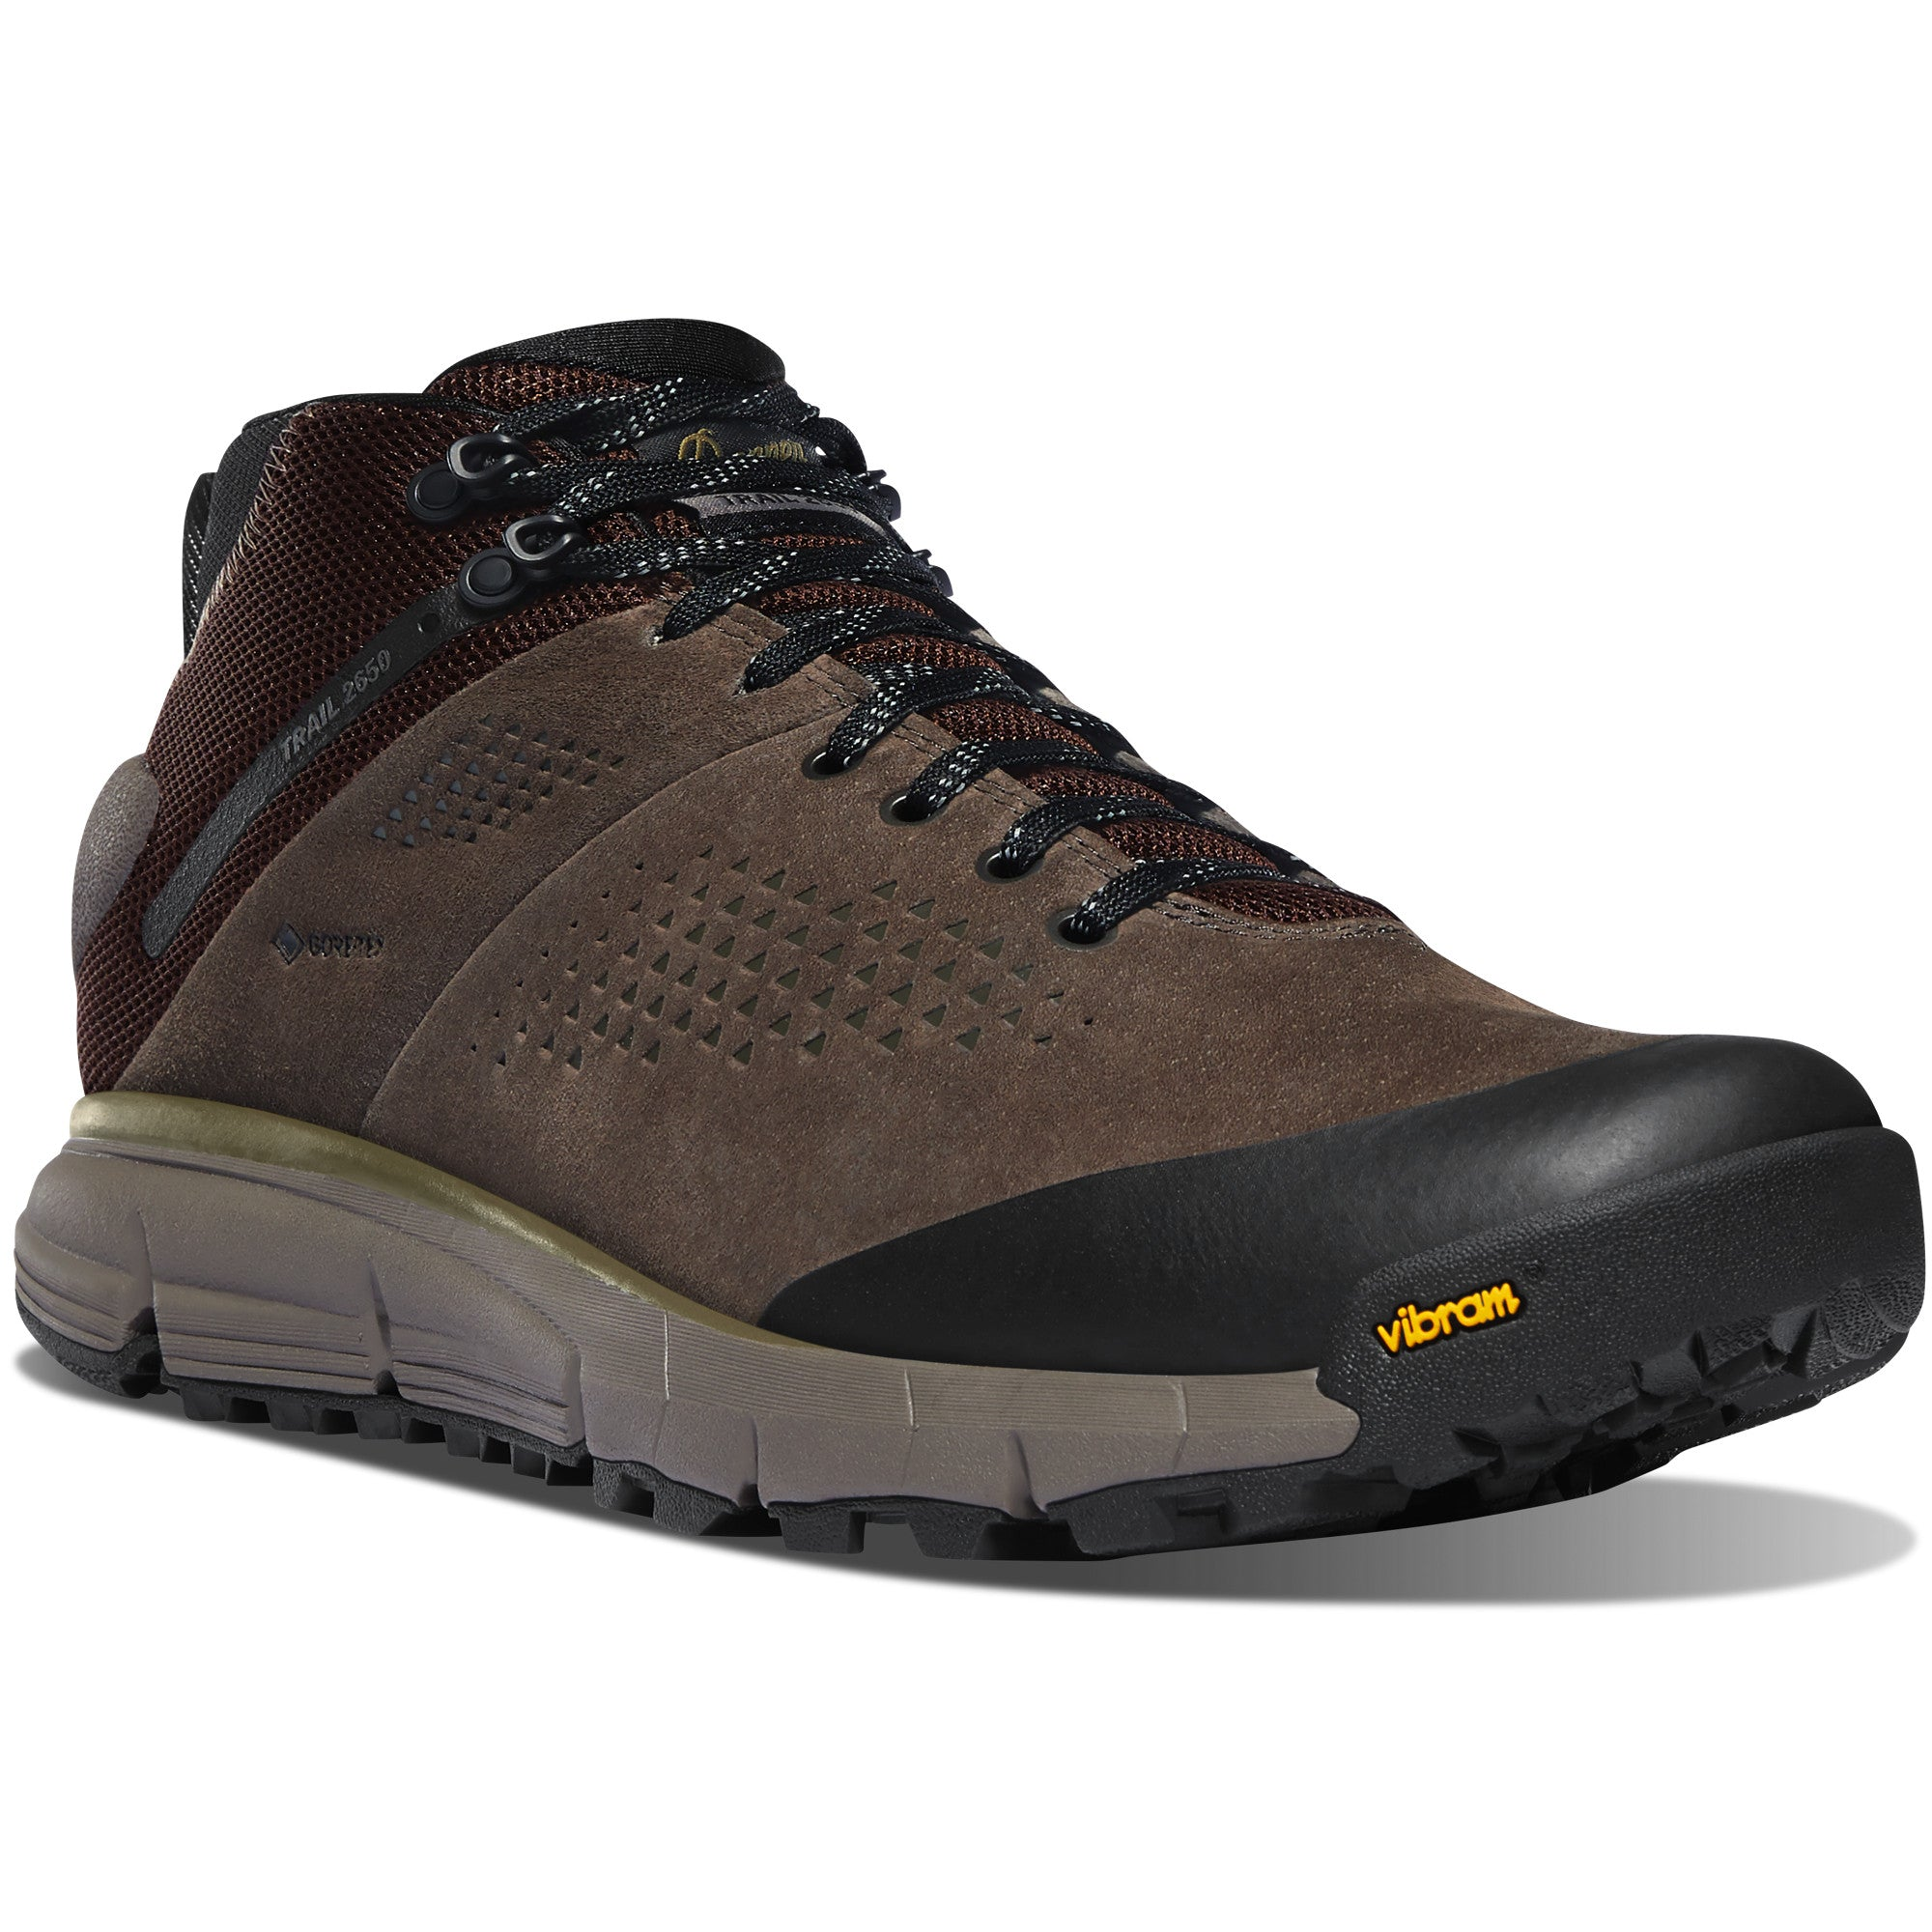 Trail 2650 Mid GTX - Men's